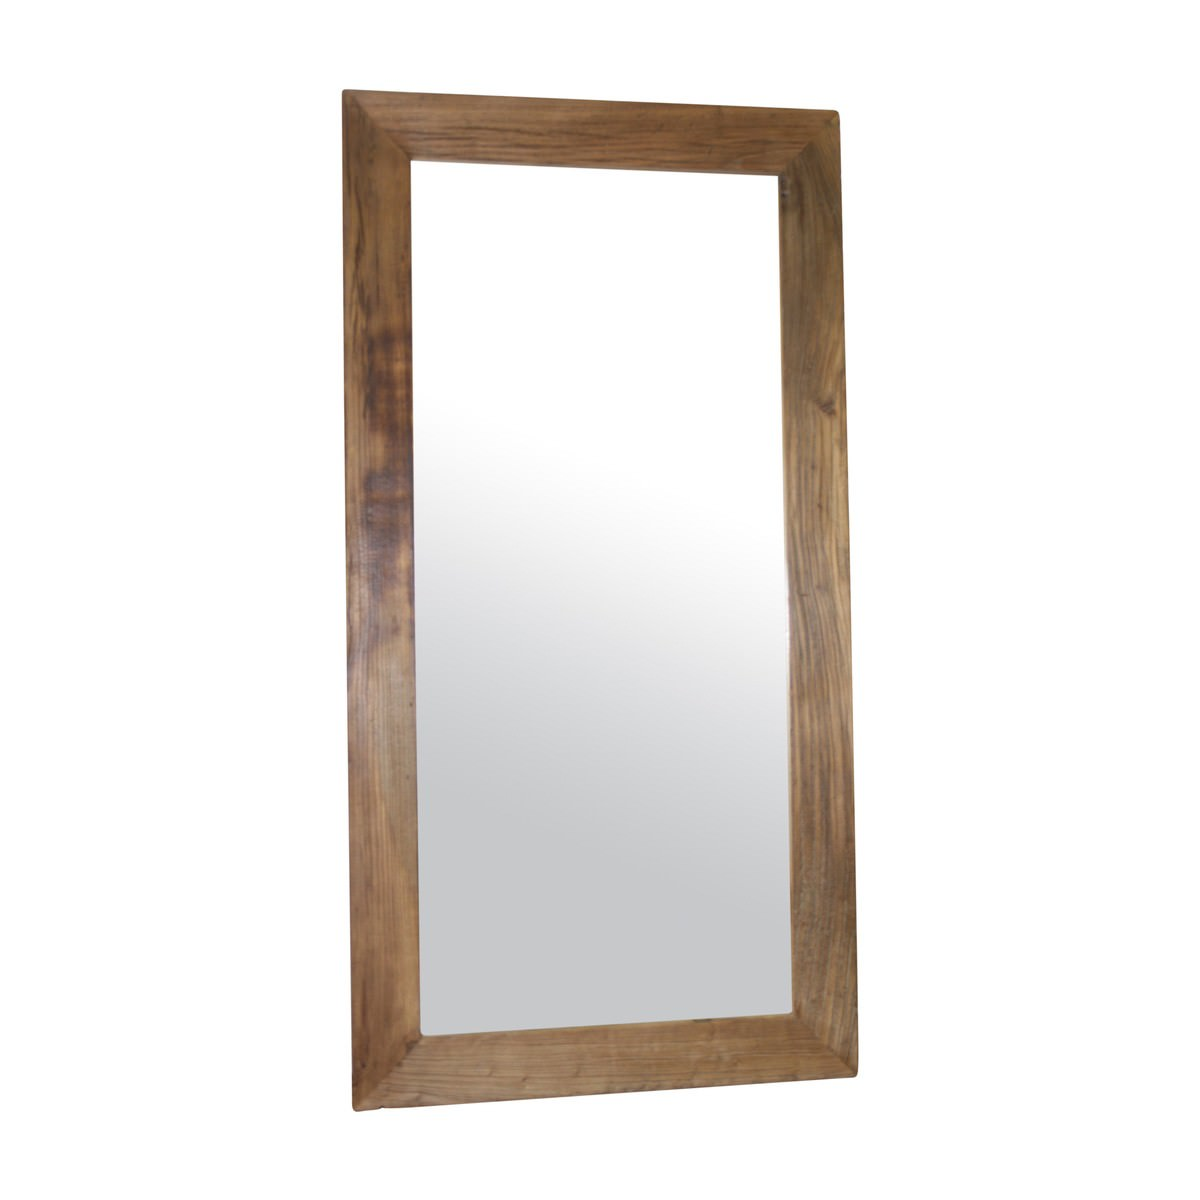 Marast Recycled Elm Timber Frame Slim Wall Mirror, 175cm